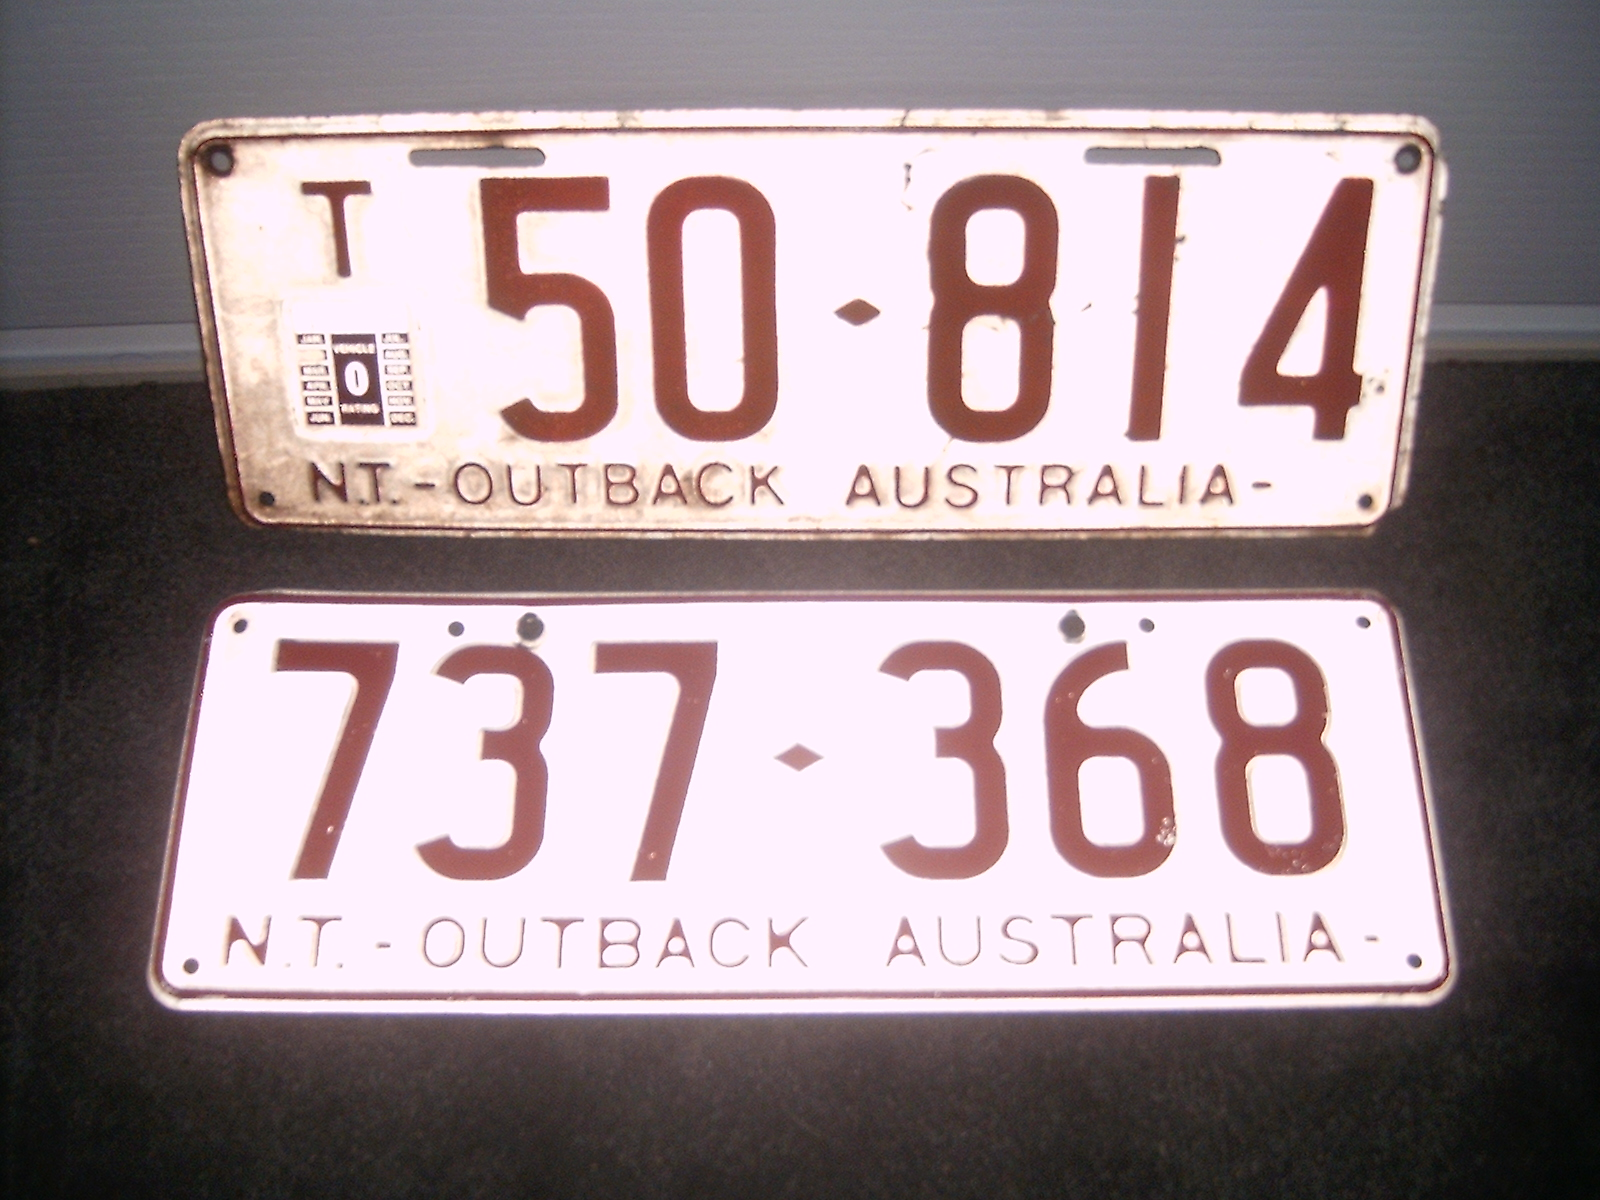 Vehicle registration plates of the Northern Territory